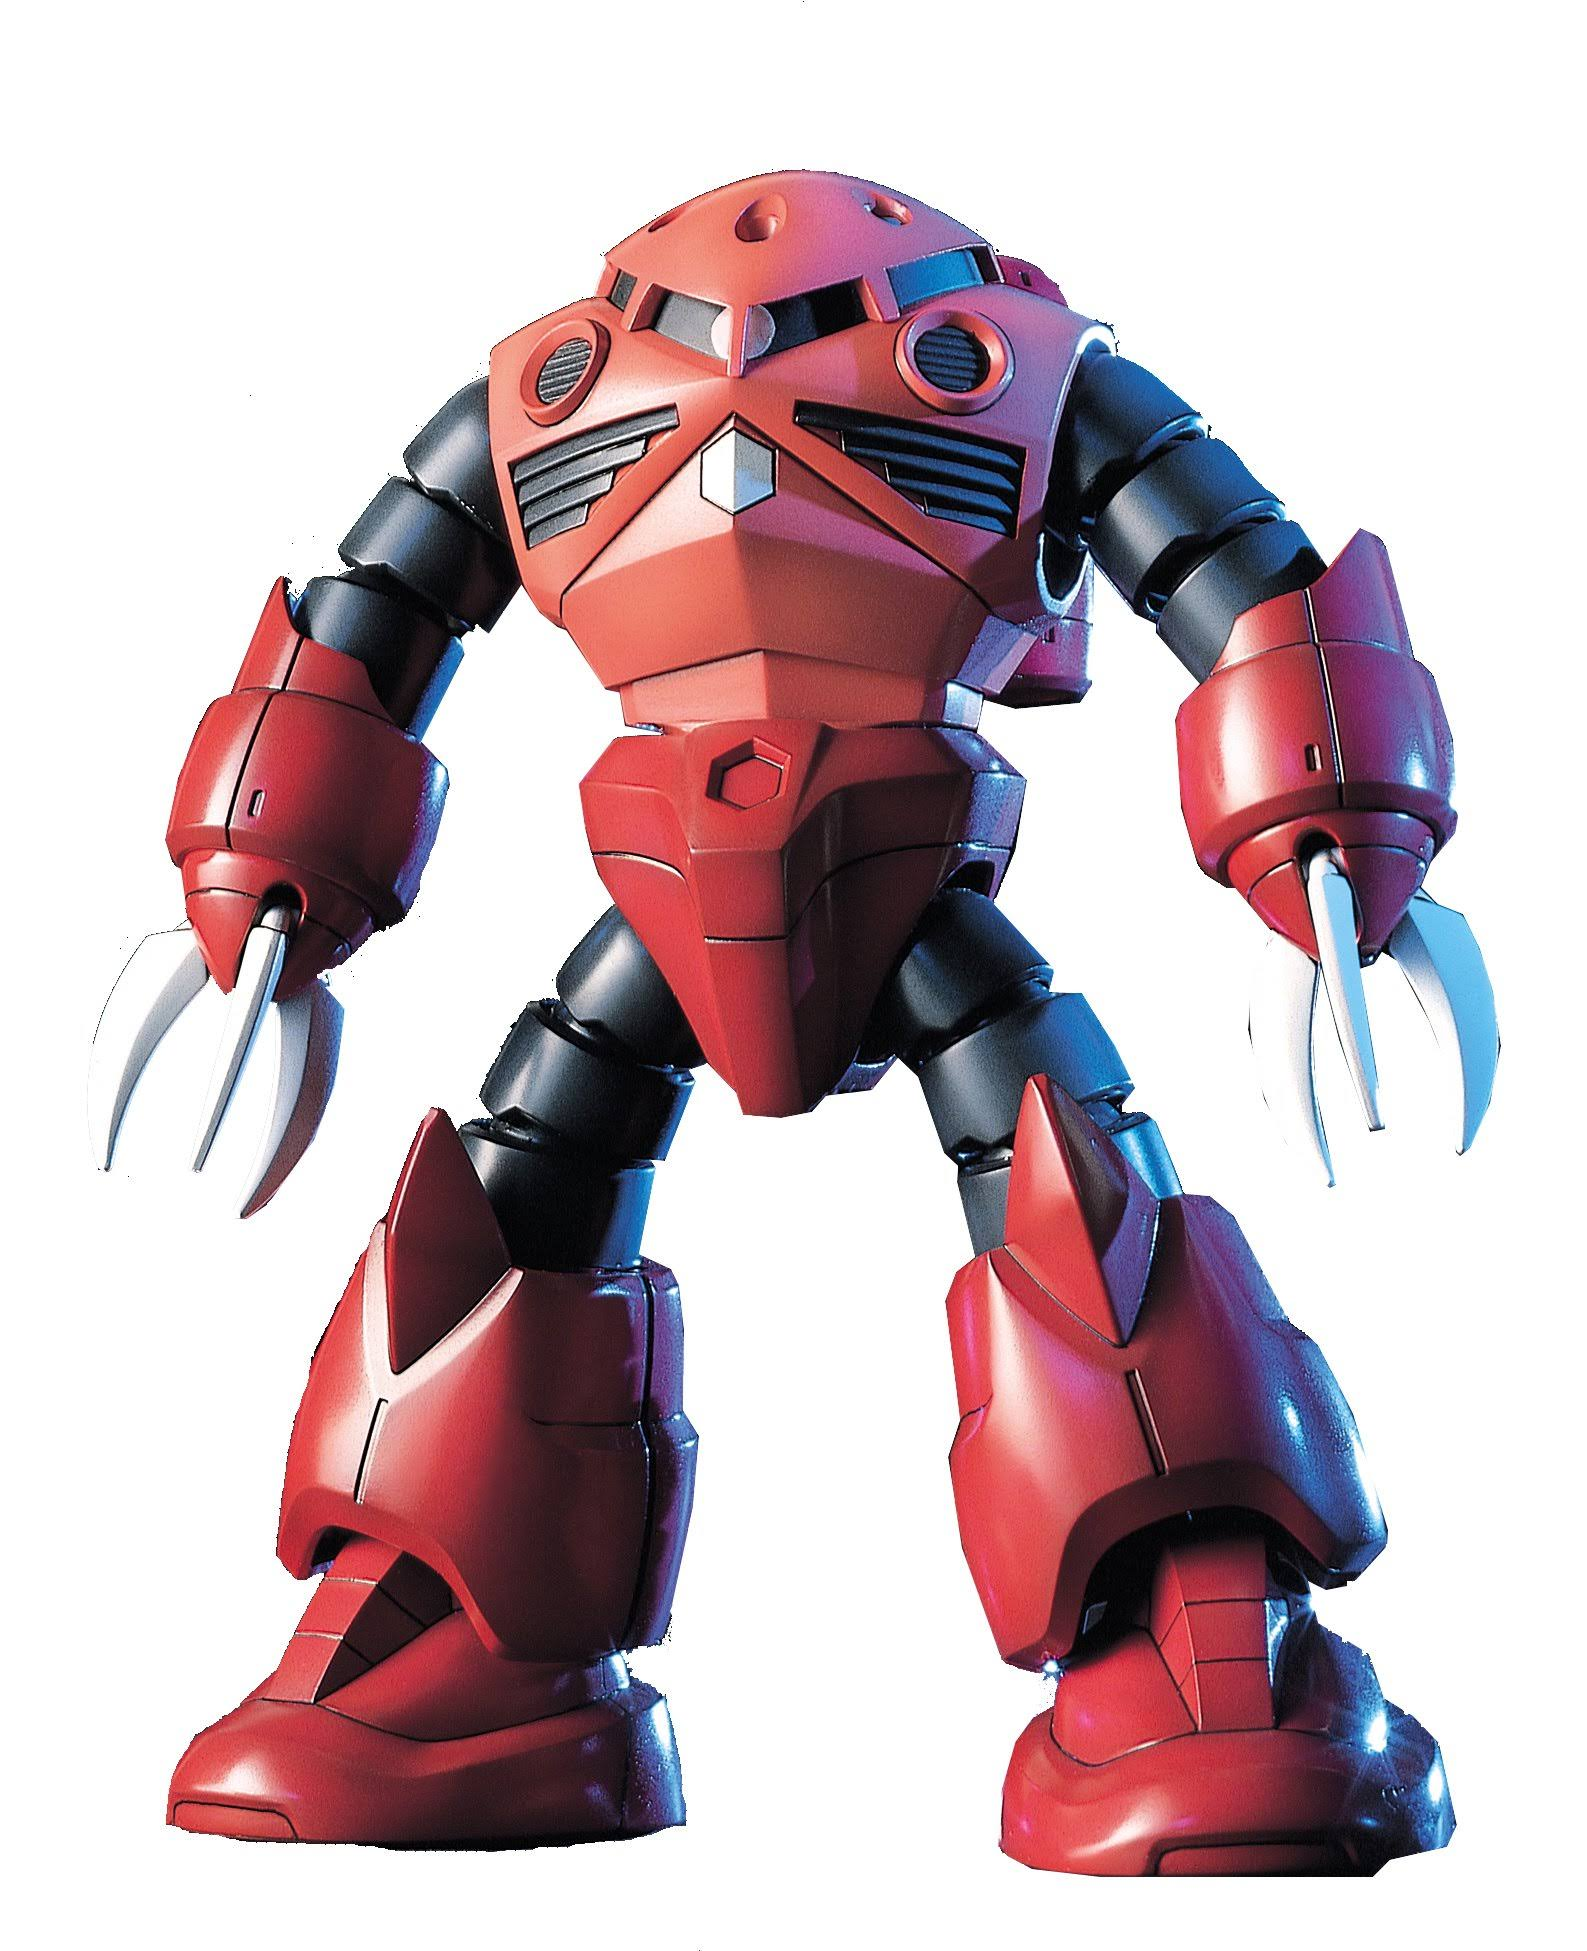 Bandai Msm-07s Z'Gok Model - 1:144 Scale